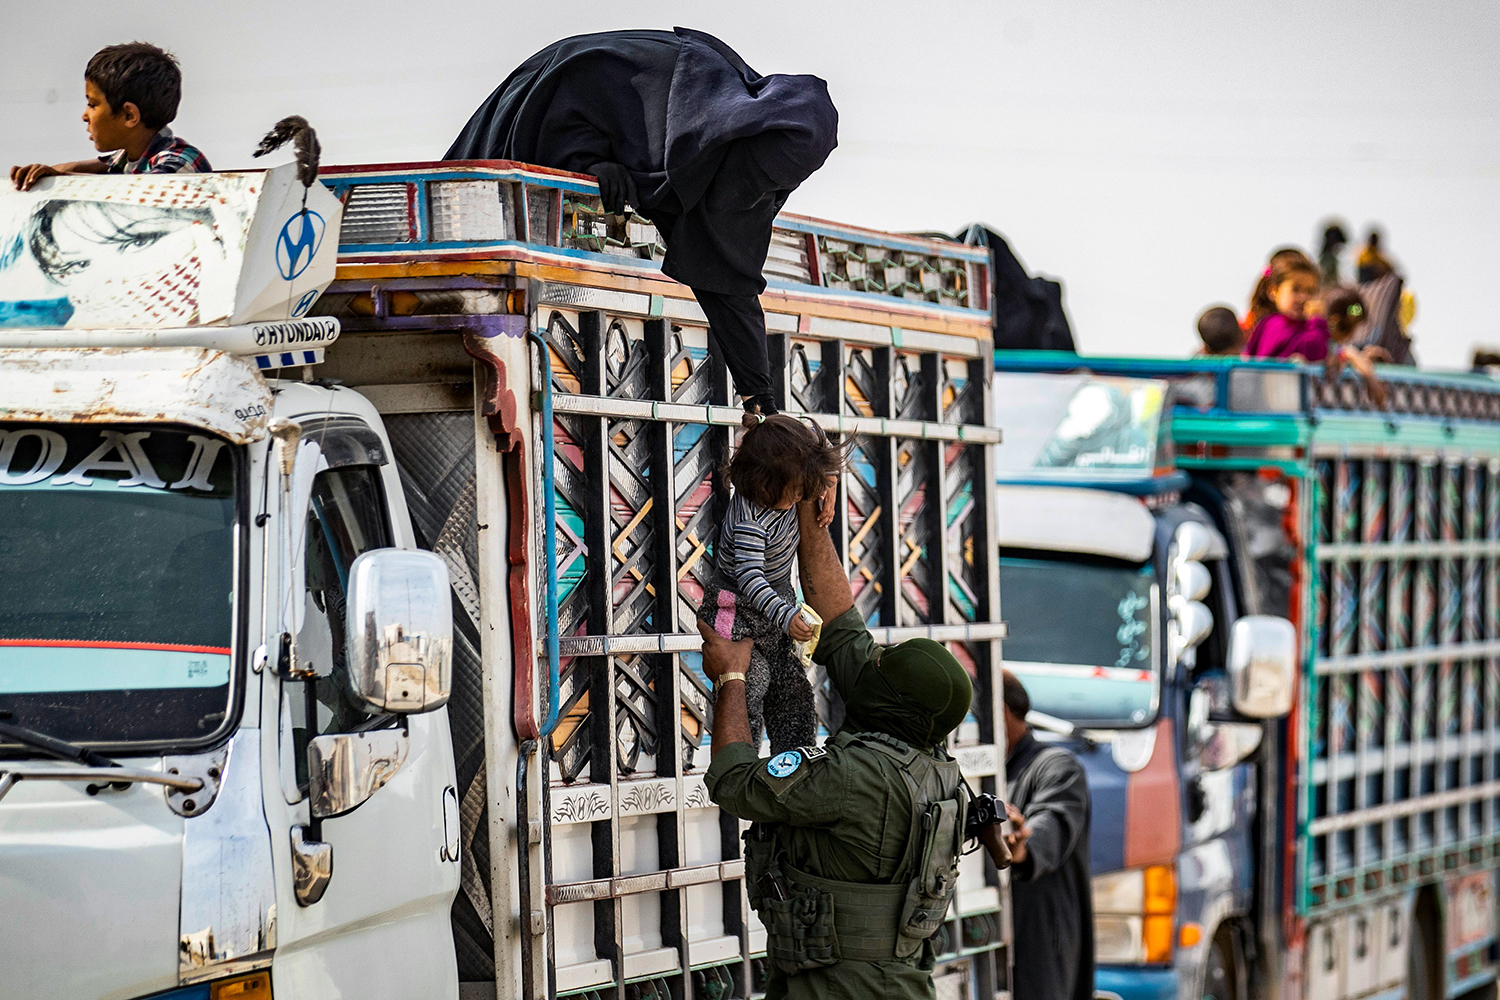 A Kurdish fighter helps a Syrian child board a truck at the Kurdish-run al-Hol camp in northeast Syria. The truck was transporting Syrian women and children suspected of being related to the Islamic State from the camp to their homes Oct. 28. DELIL SOULEIMAN/AFP via Getty Images